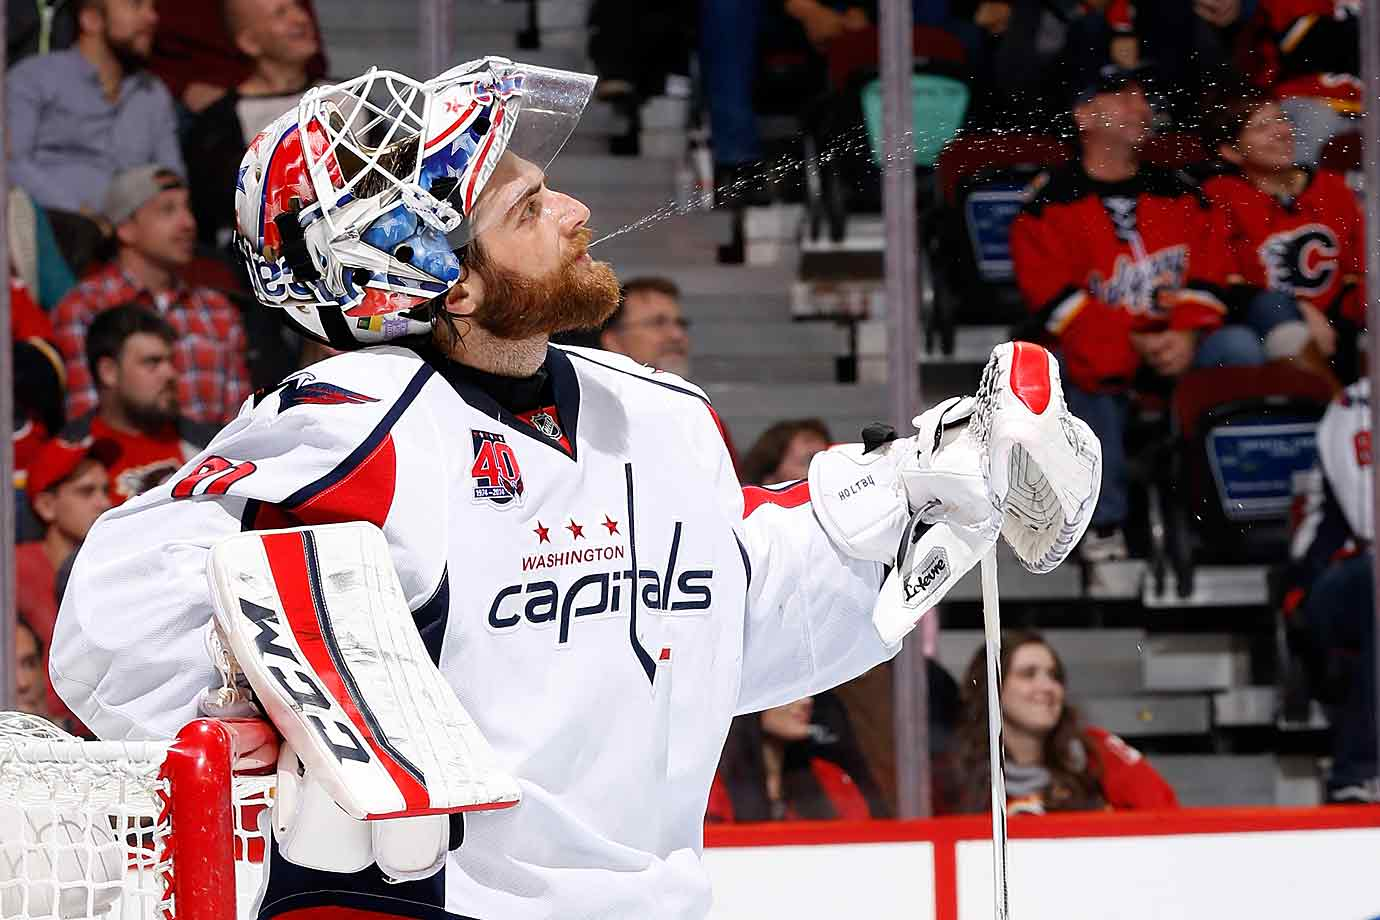 The spitting image. The Capitals' goaltender tries to douse the Flames during a game at Calgary's  Scotiabank Saddledome on Oct. 25, 2014.